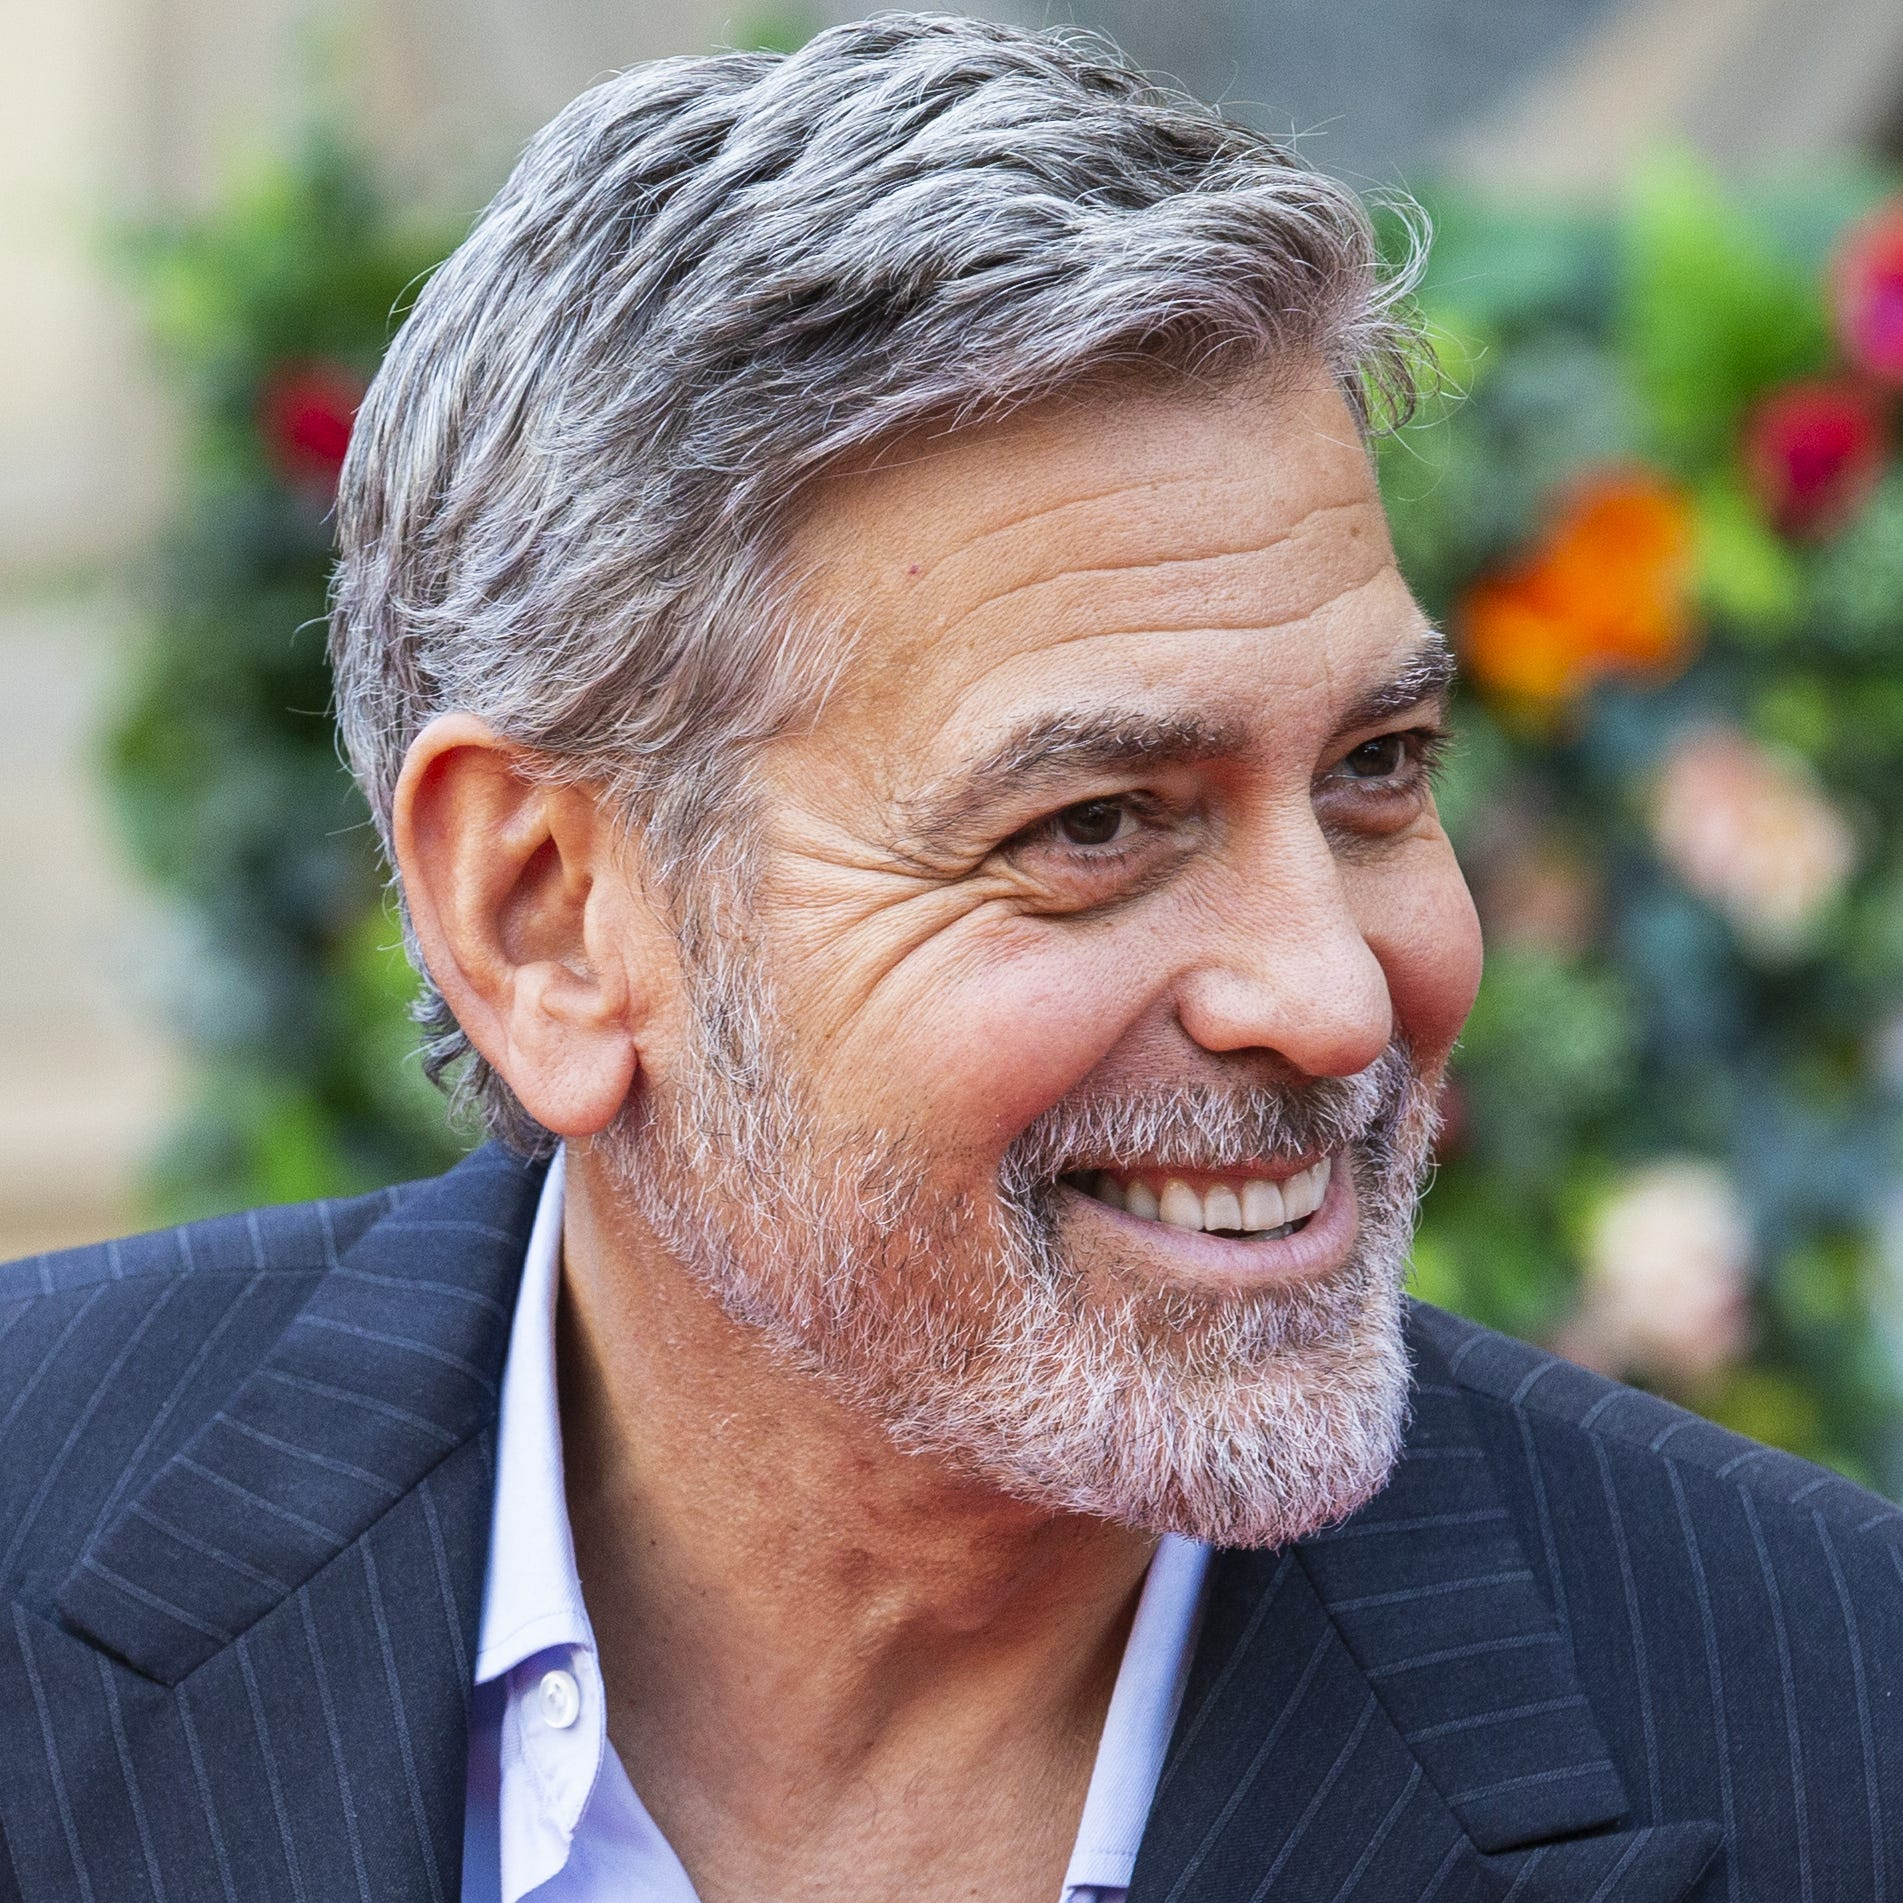 George Clooney wants people to boycott these hotels over anti-LGBTQ death laws